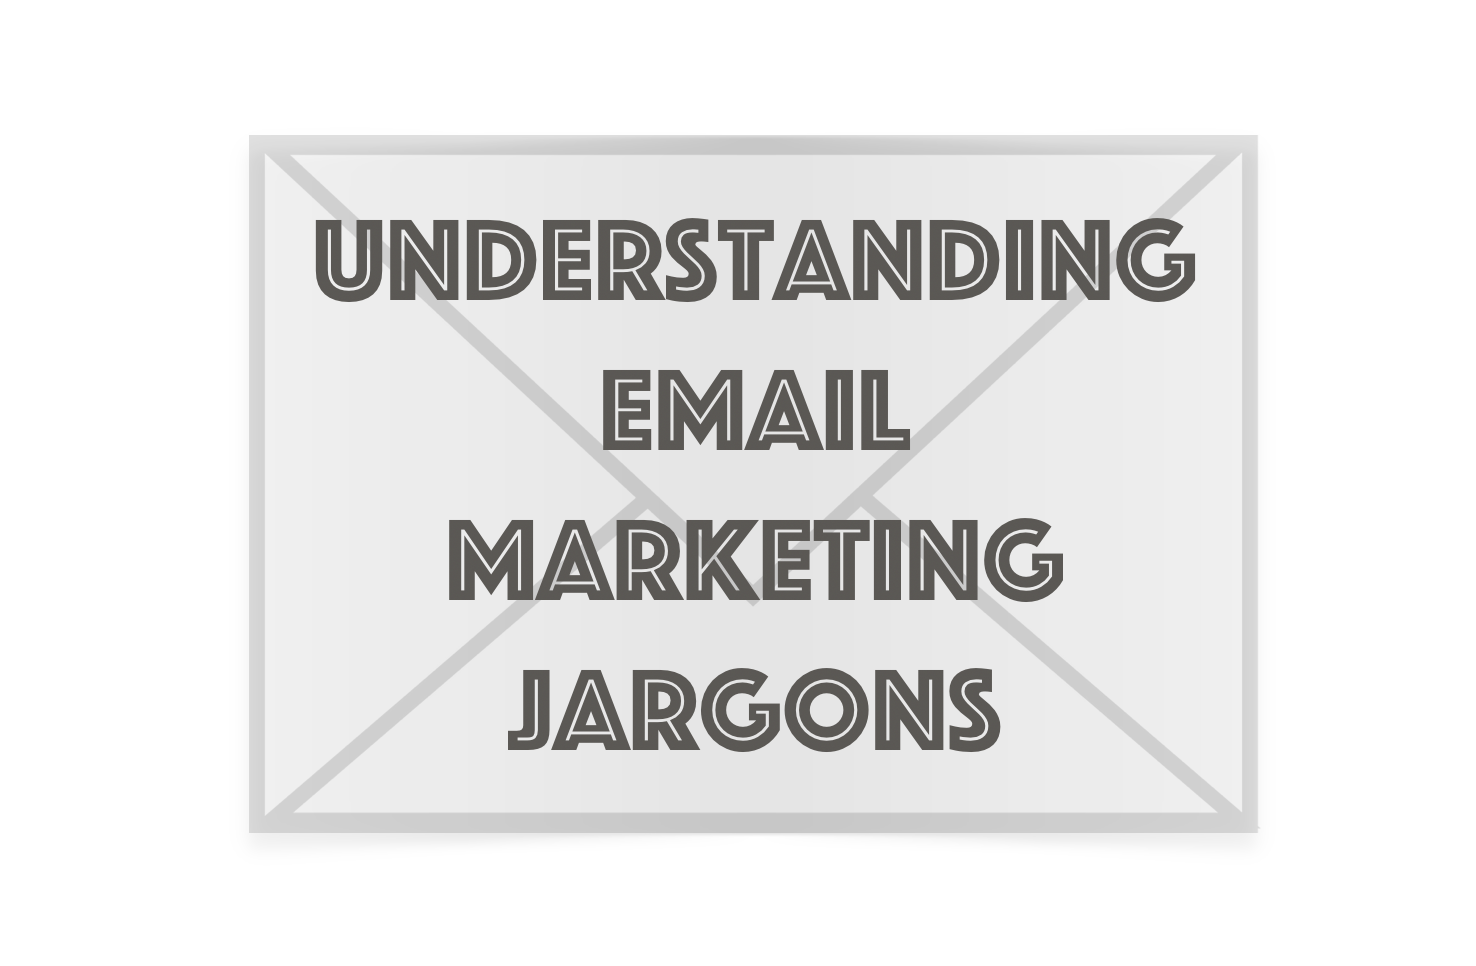 Understanding Email Marketing Jargons